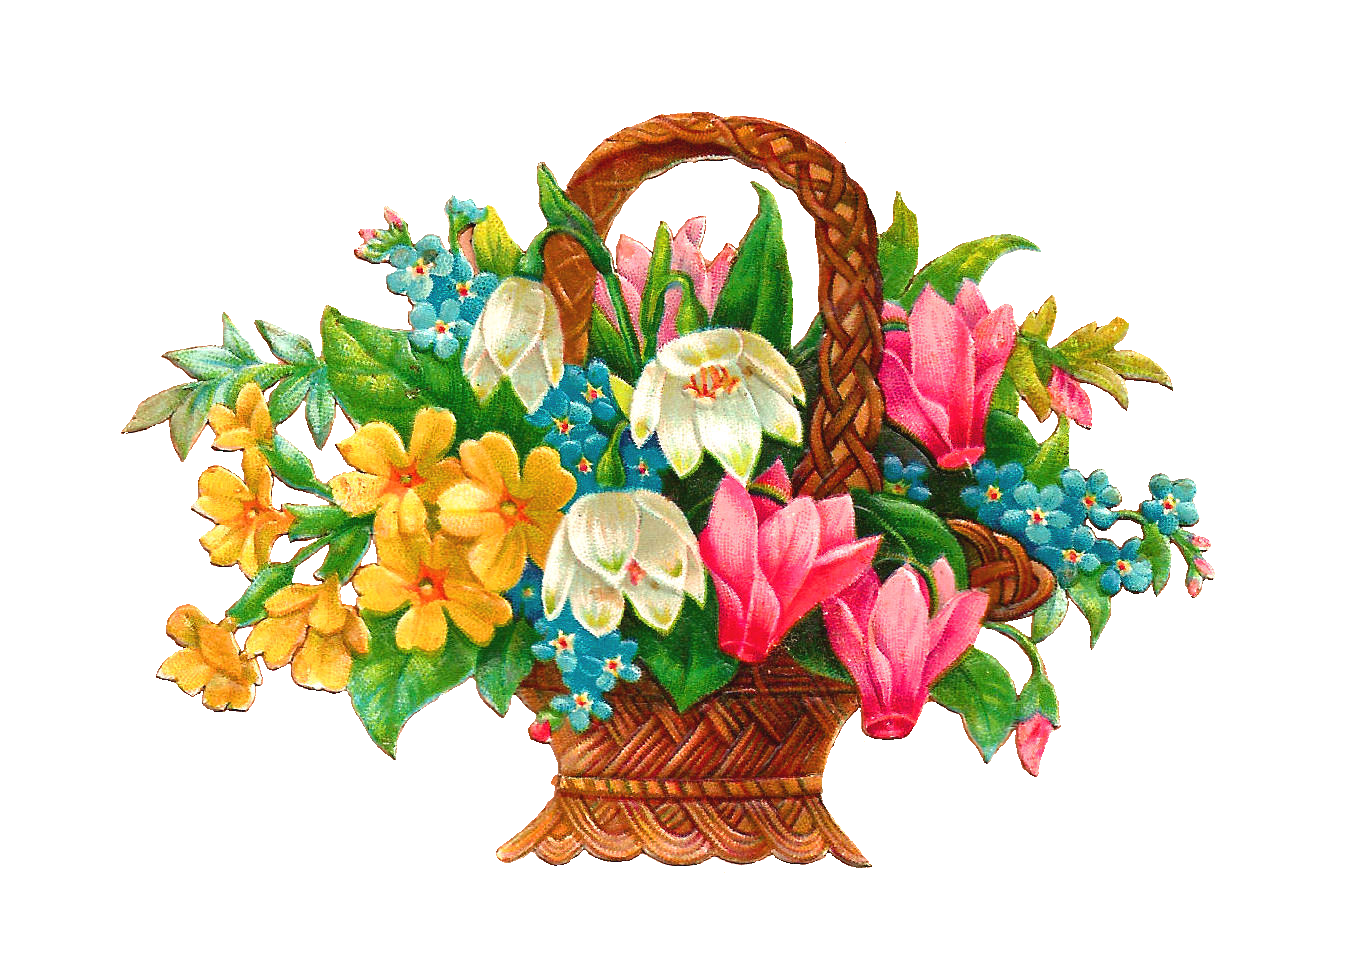 Antique images free flower. Flowers clipart beautiful